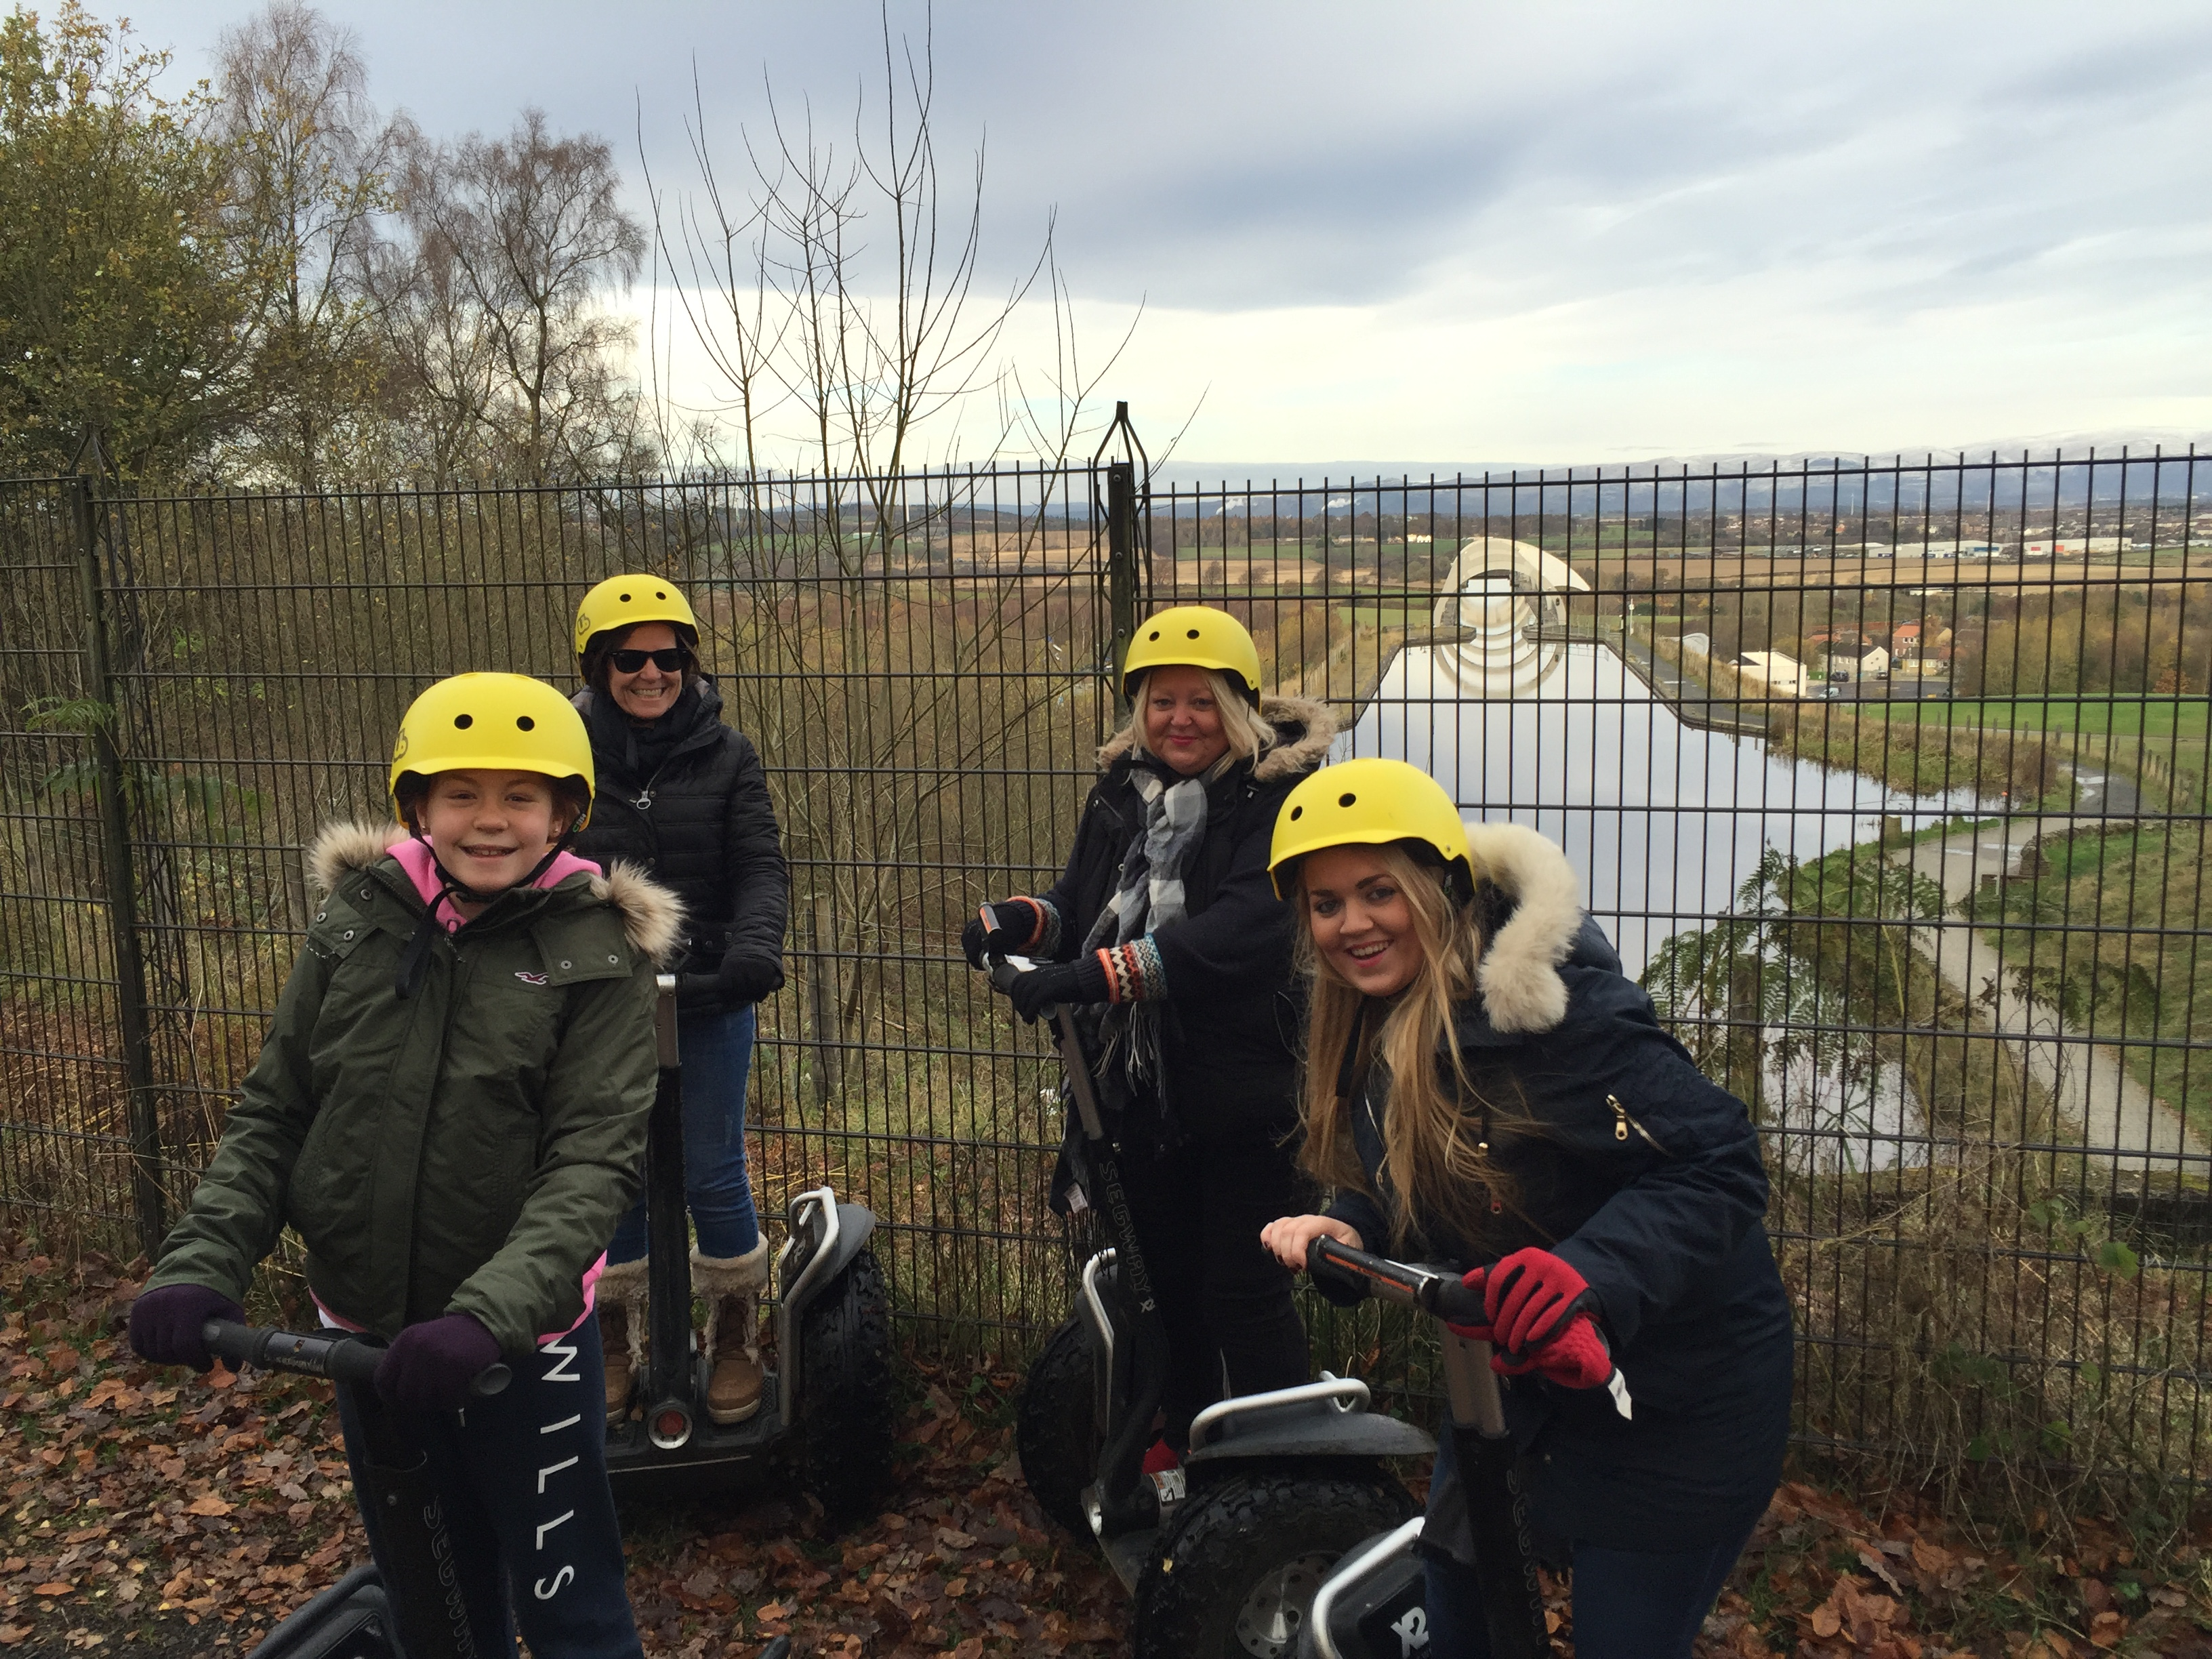 falkirk-wheel-falkirk-segway-safari-wheel-scotland-weekend-away-elle-blonde-luxury-lifestyle-destination-blog